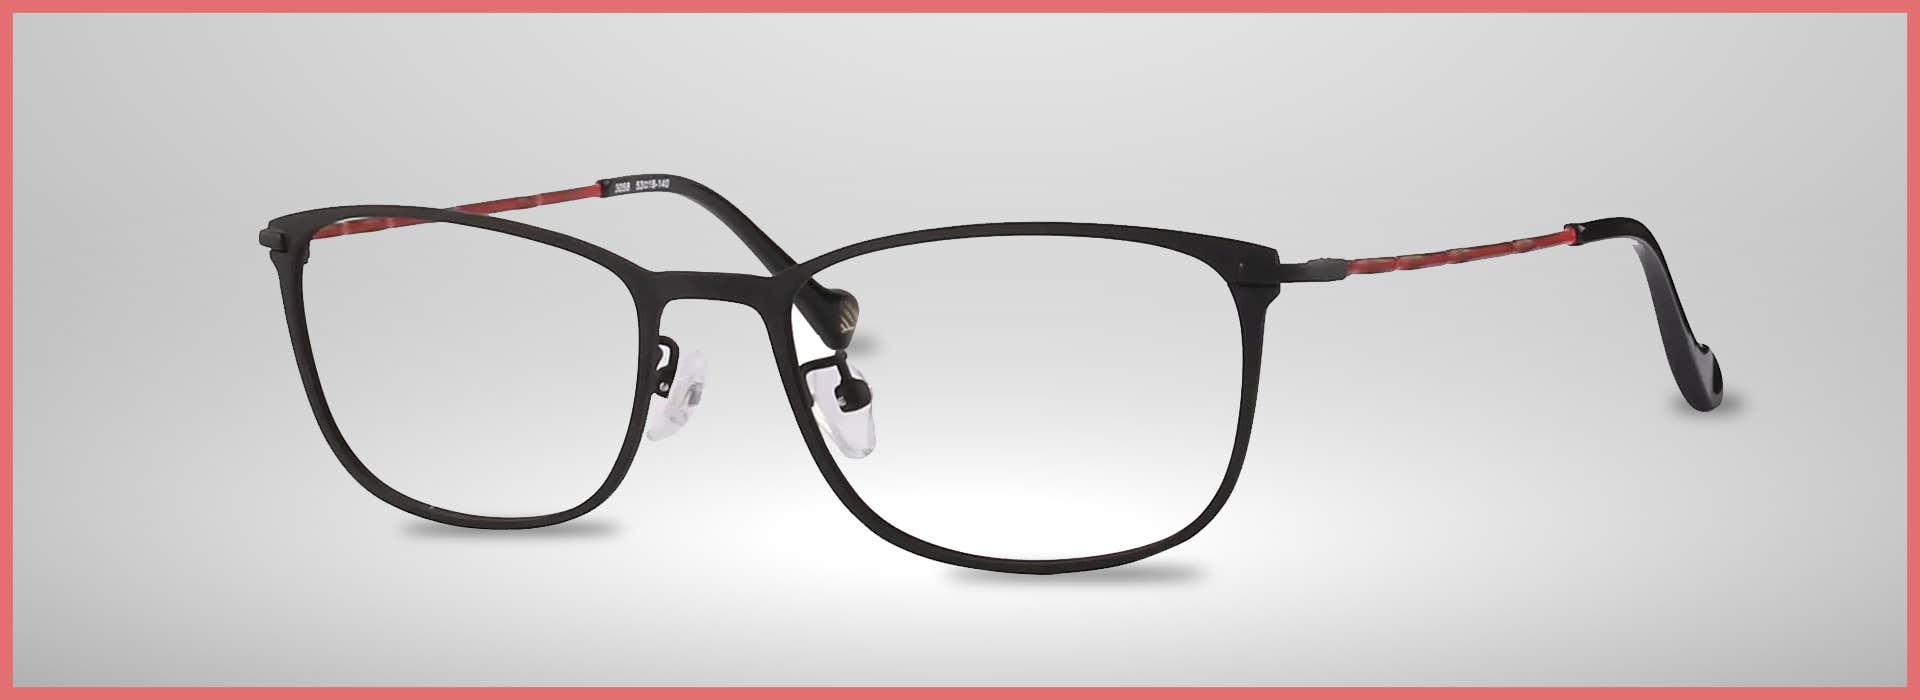 Benefits of Titanium Eyeglasses Frames